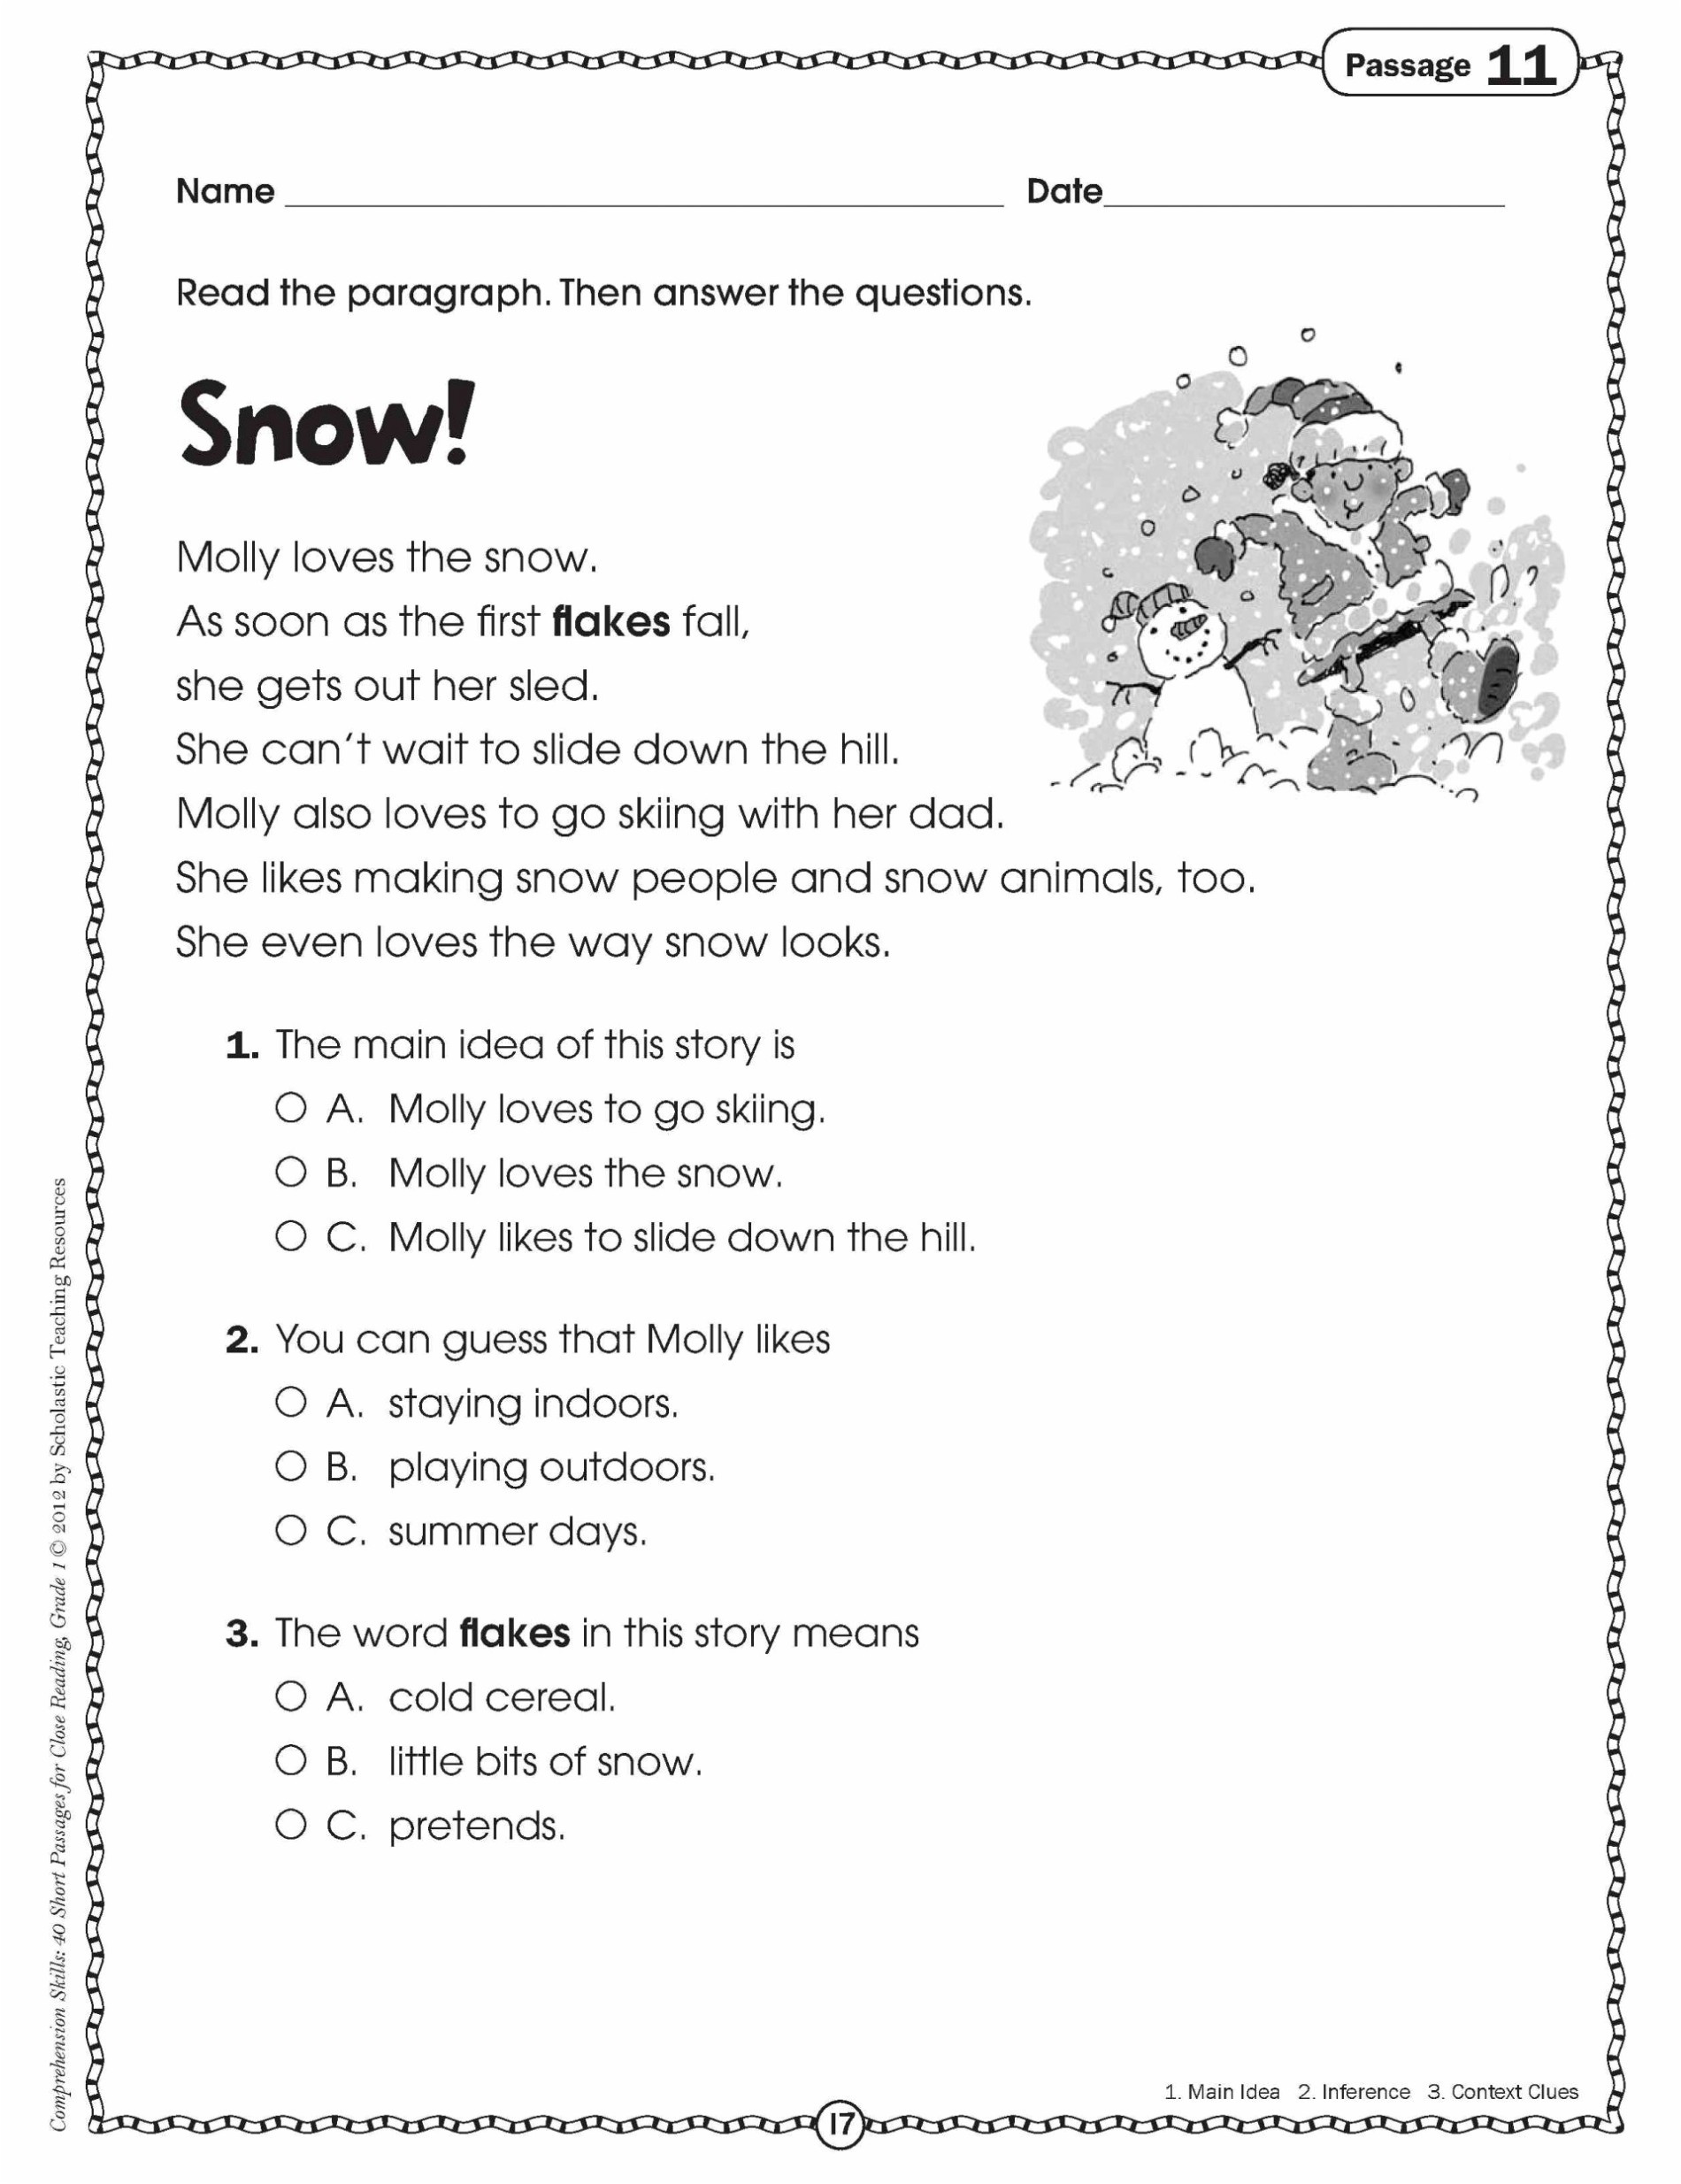 Multiple Choice Math Worksheets Math Worksheet Year Readingnsion Worksheets Free Math